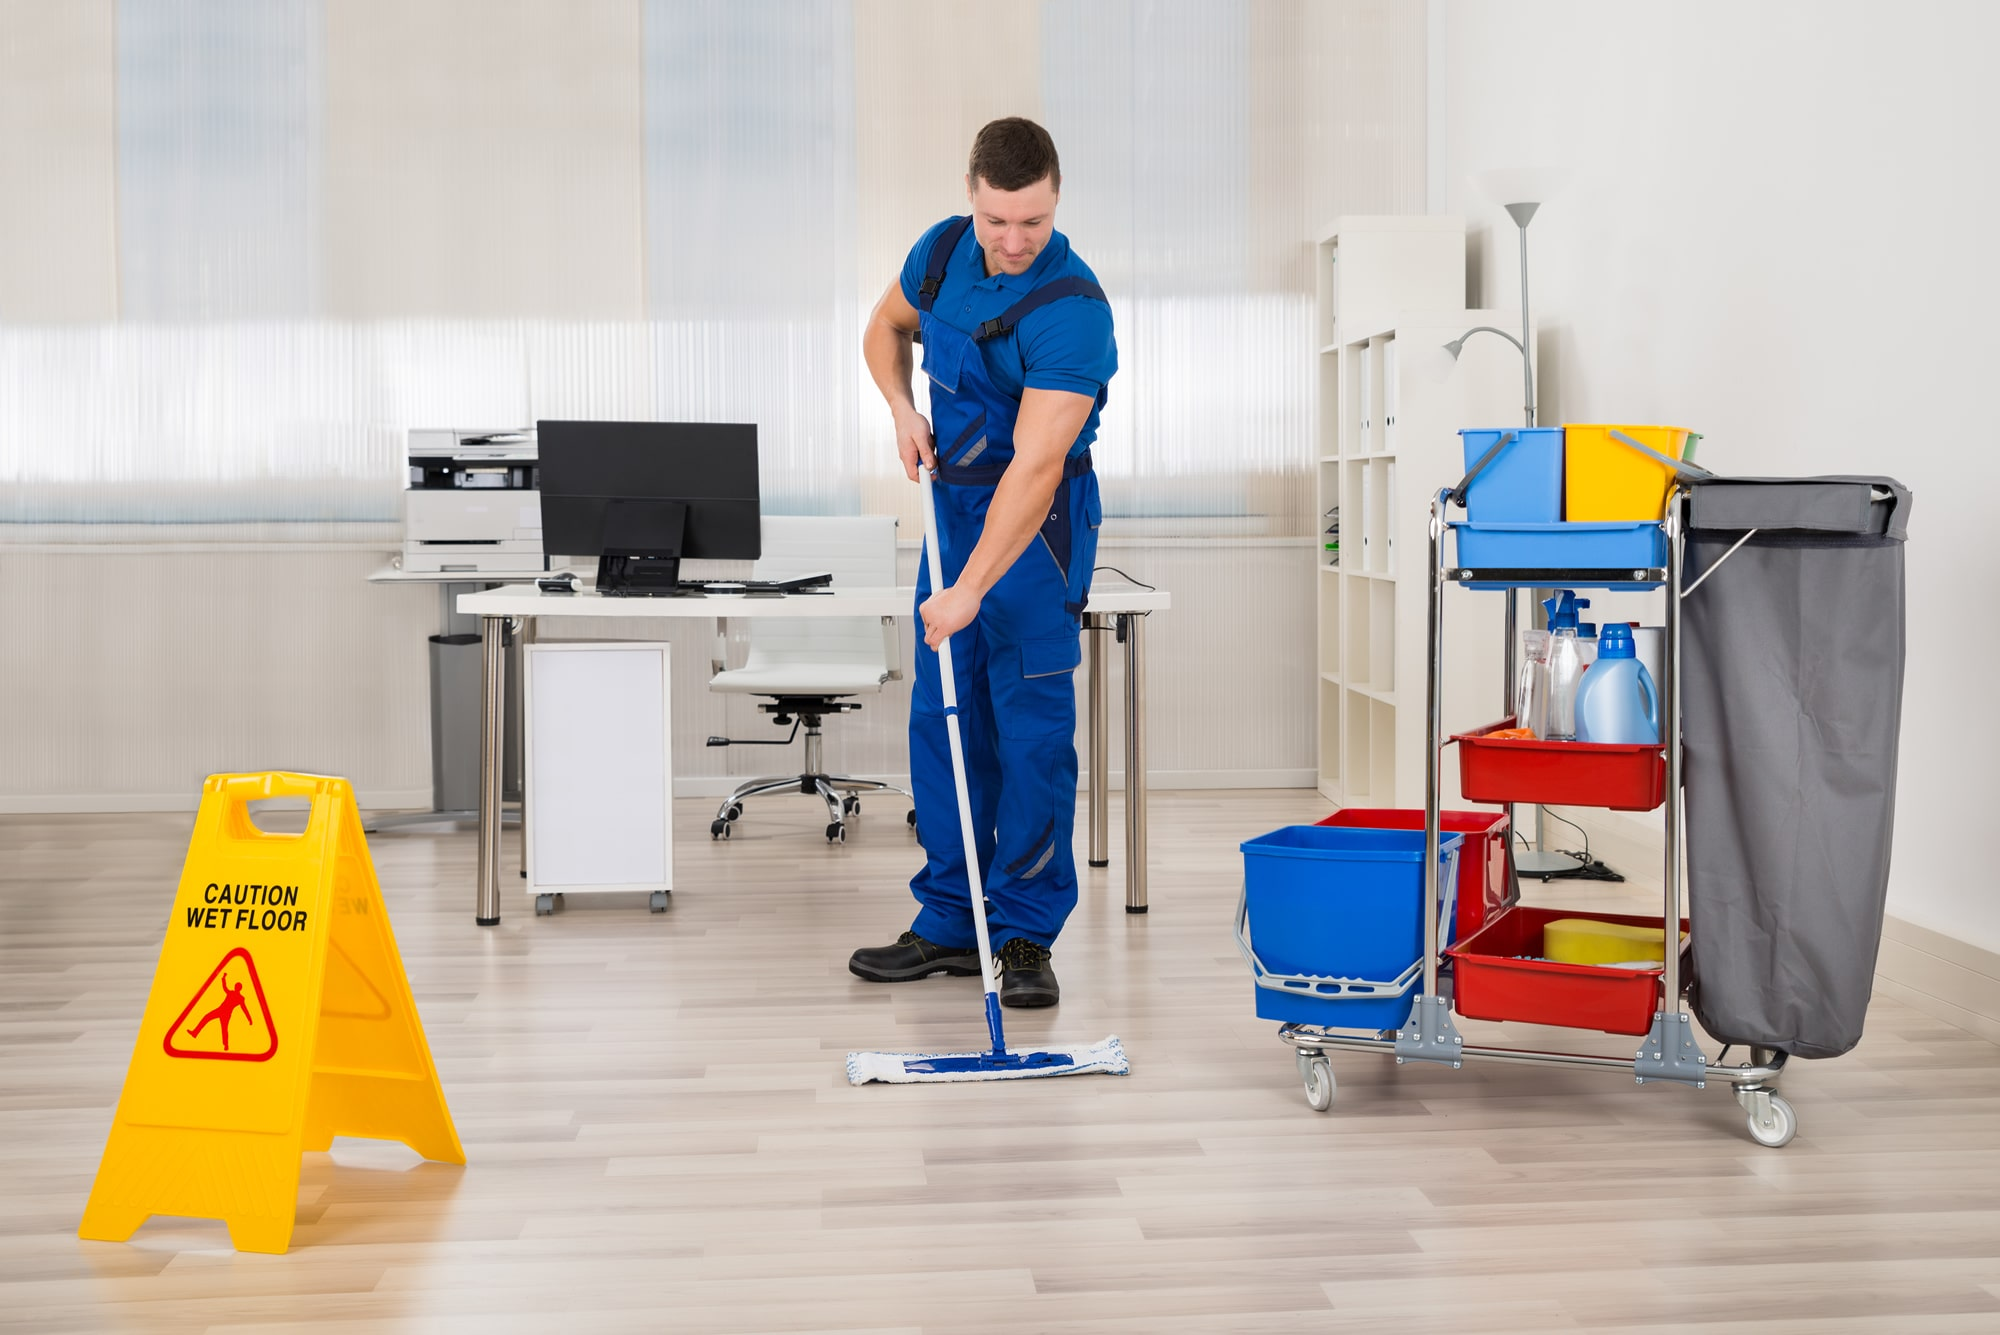 cleaning-min.jpg